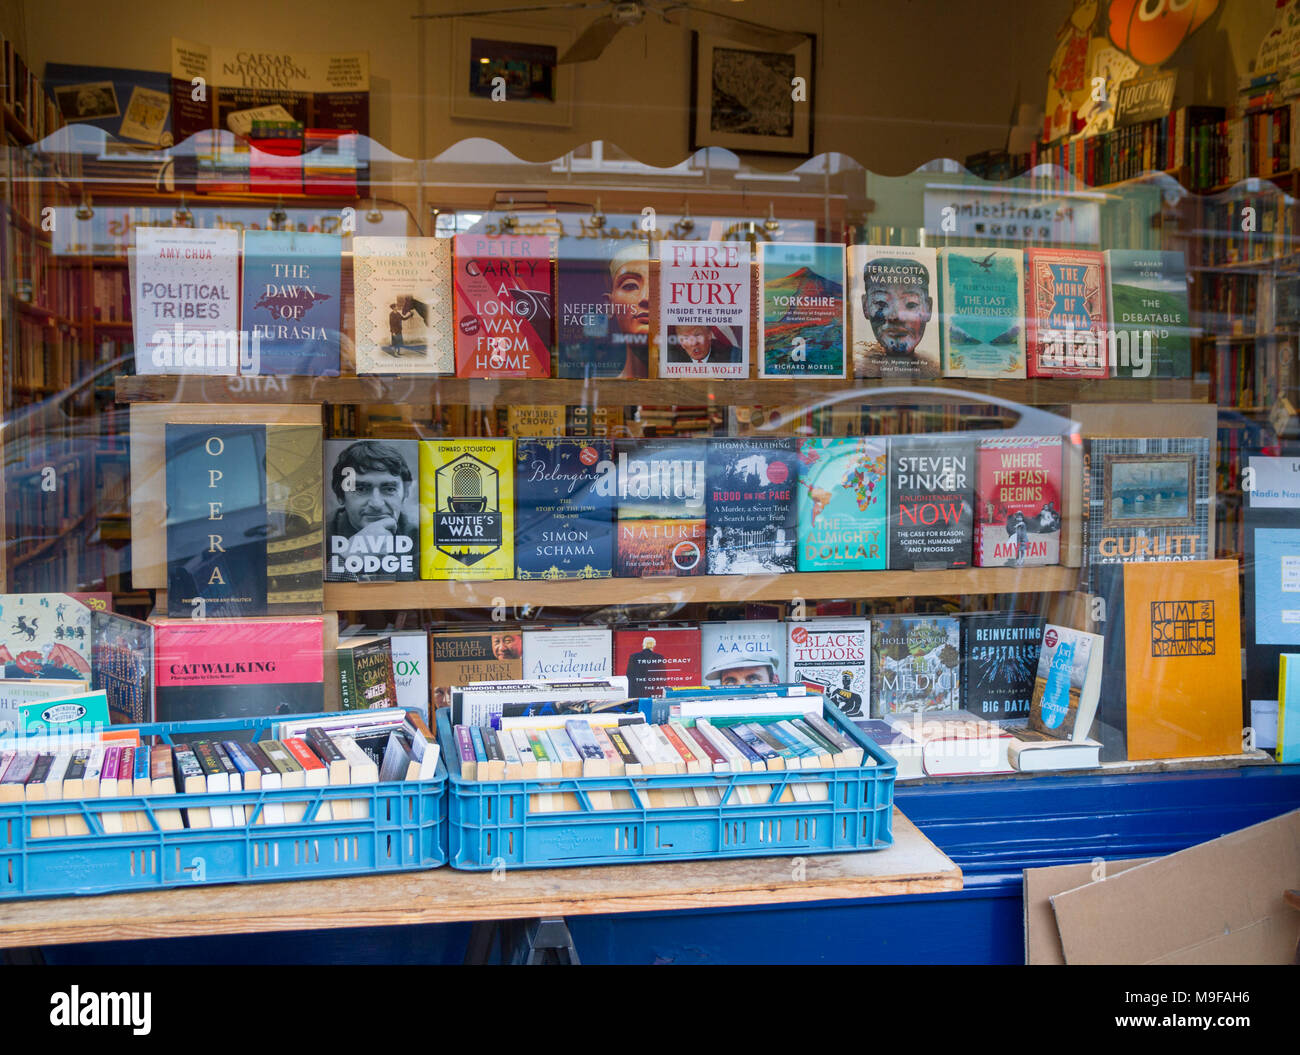 Primrose Hill Books, Old fashioned bookshop, bookstore with crates of secondhand books outside stacked, London UK window book display reading concept Stock Photo